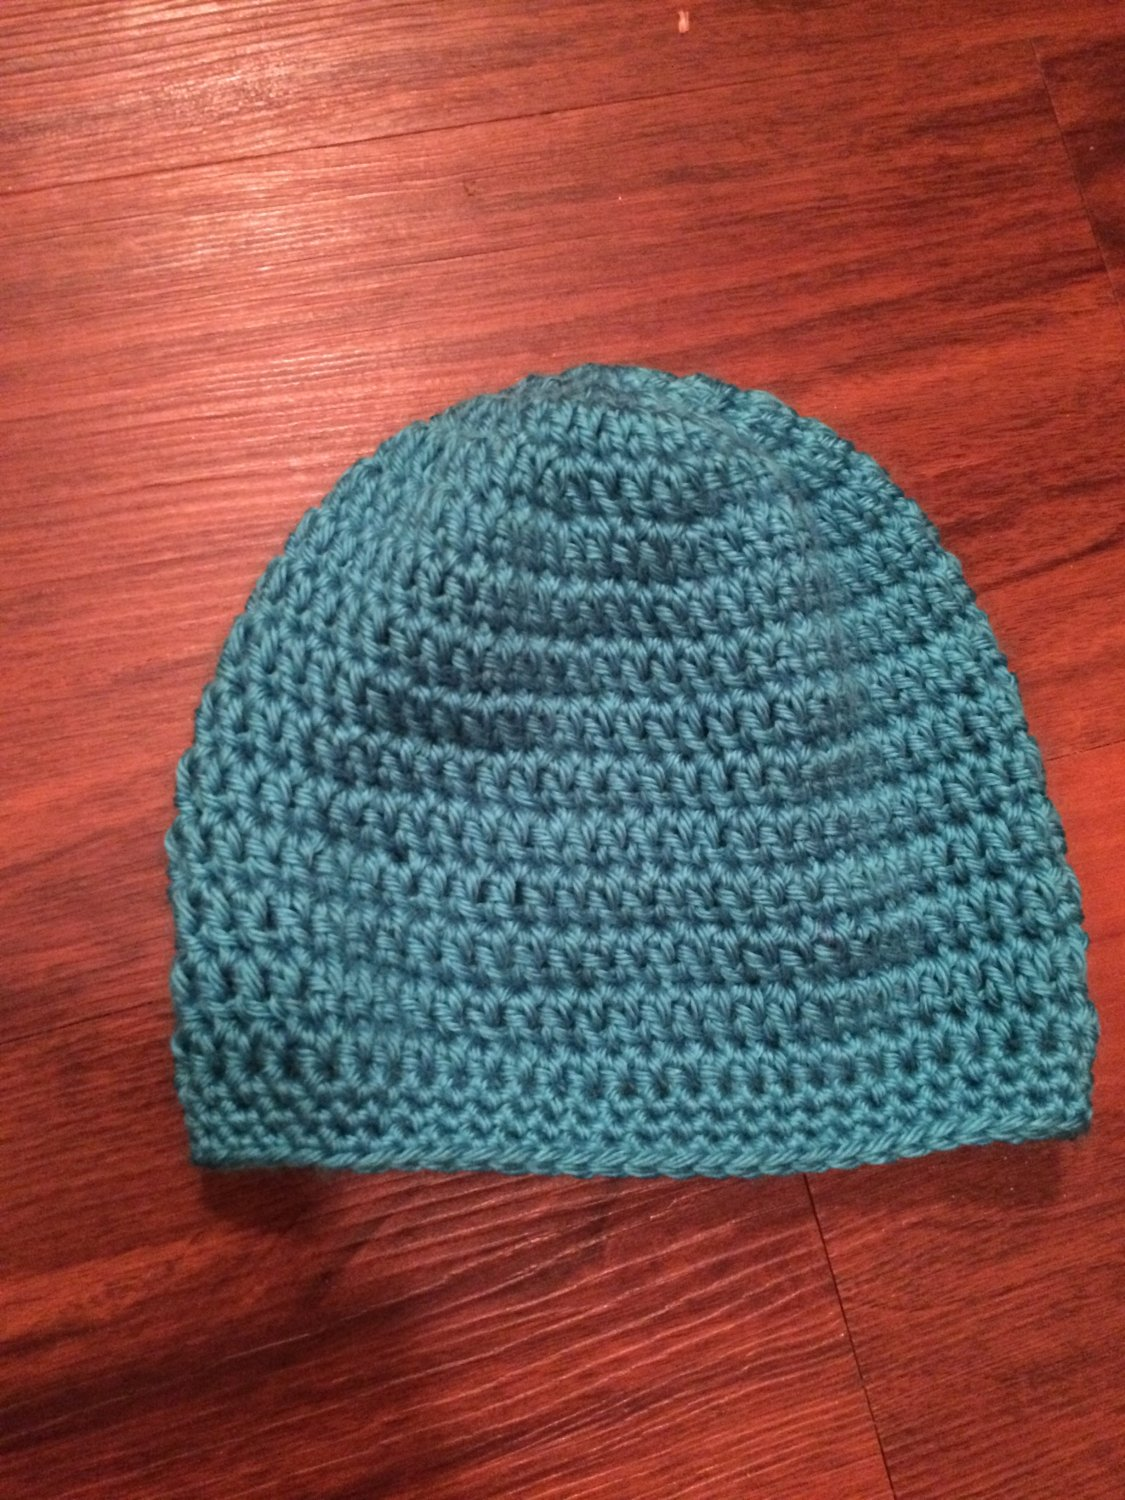 Slouchy Beanie: Youth Small, Youth Medium, Youth Large